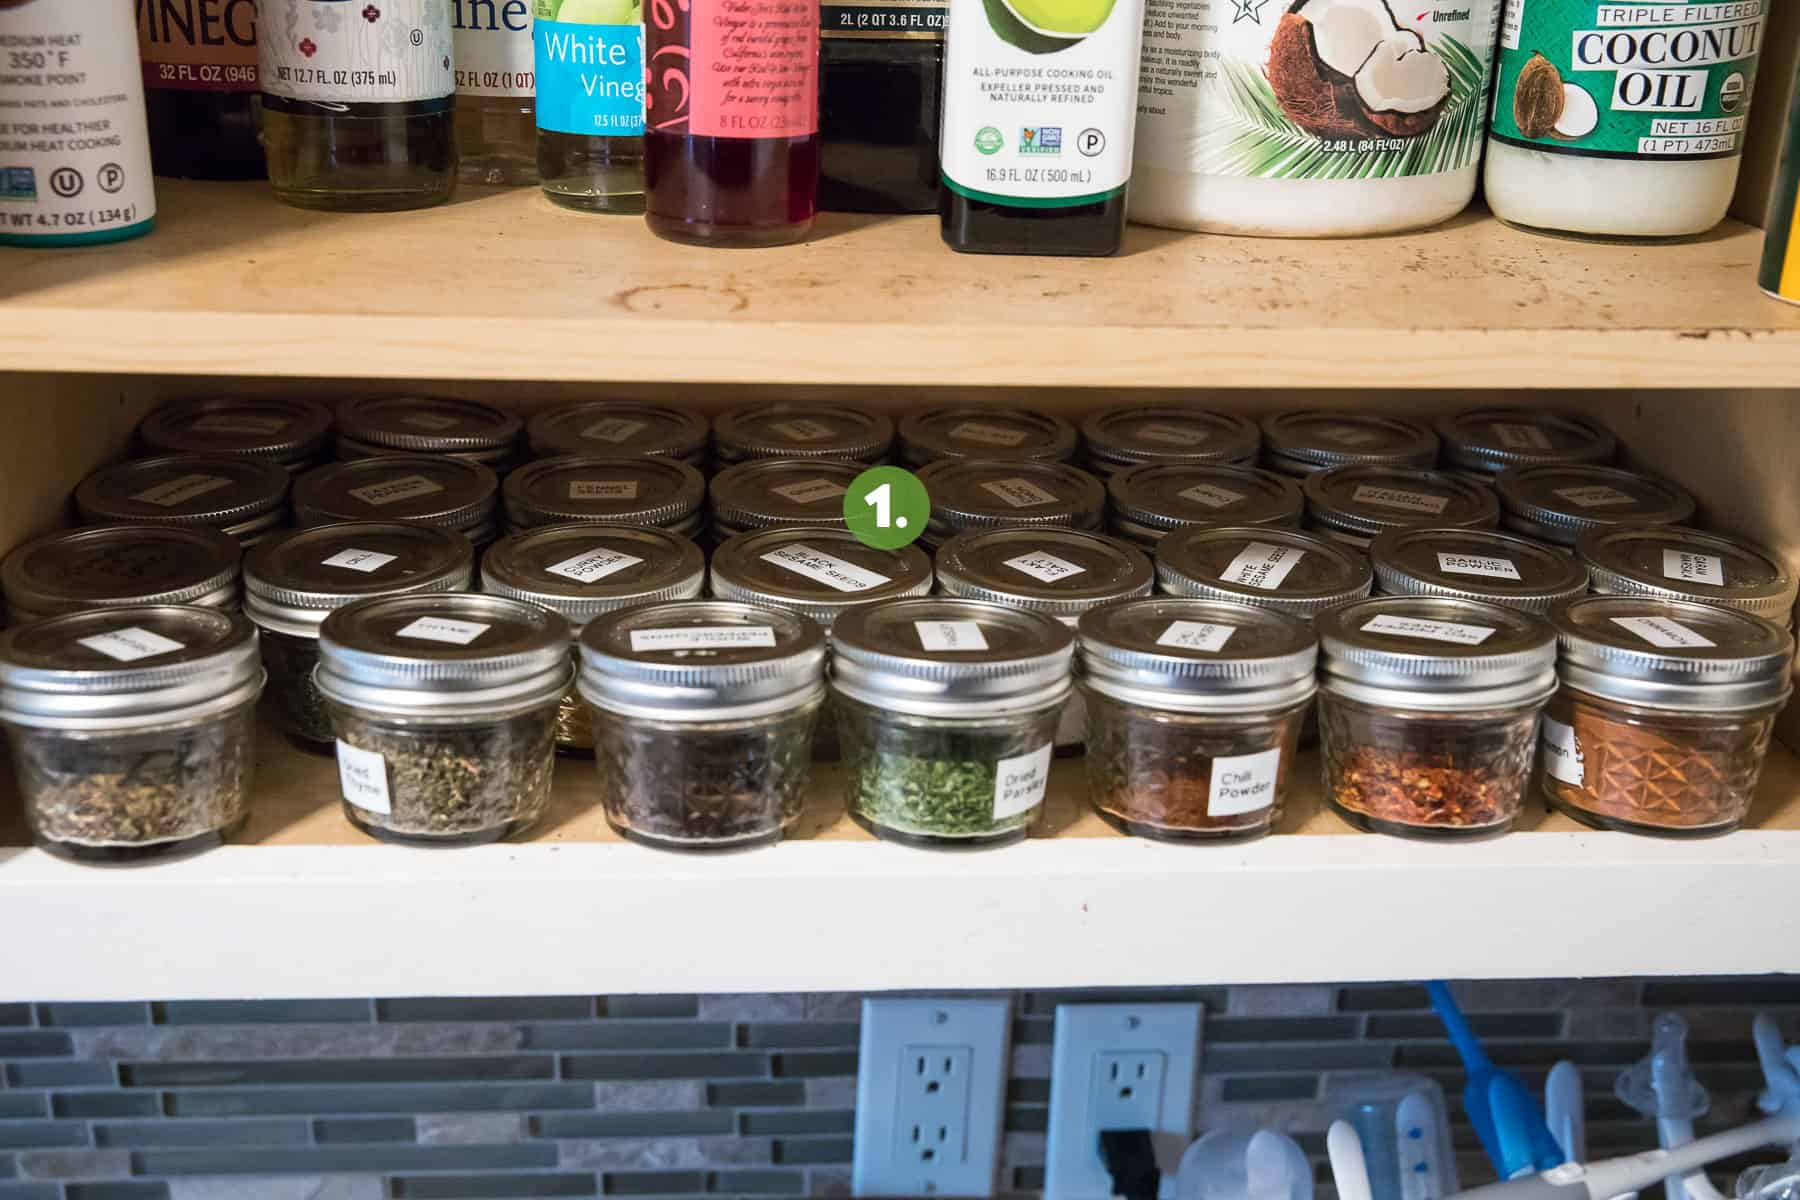 Whole30 stocked spices